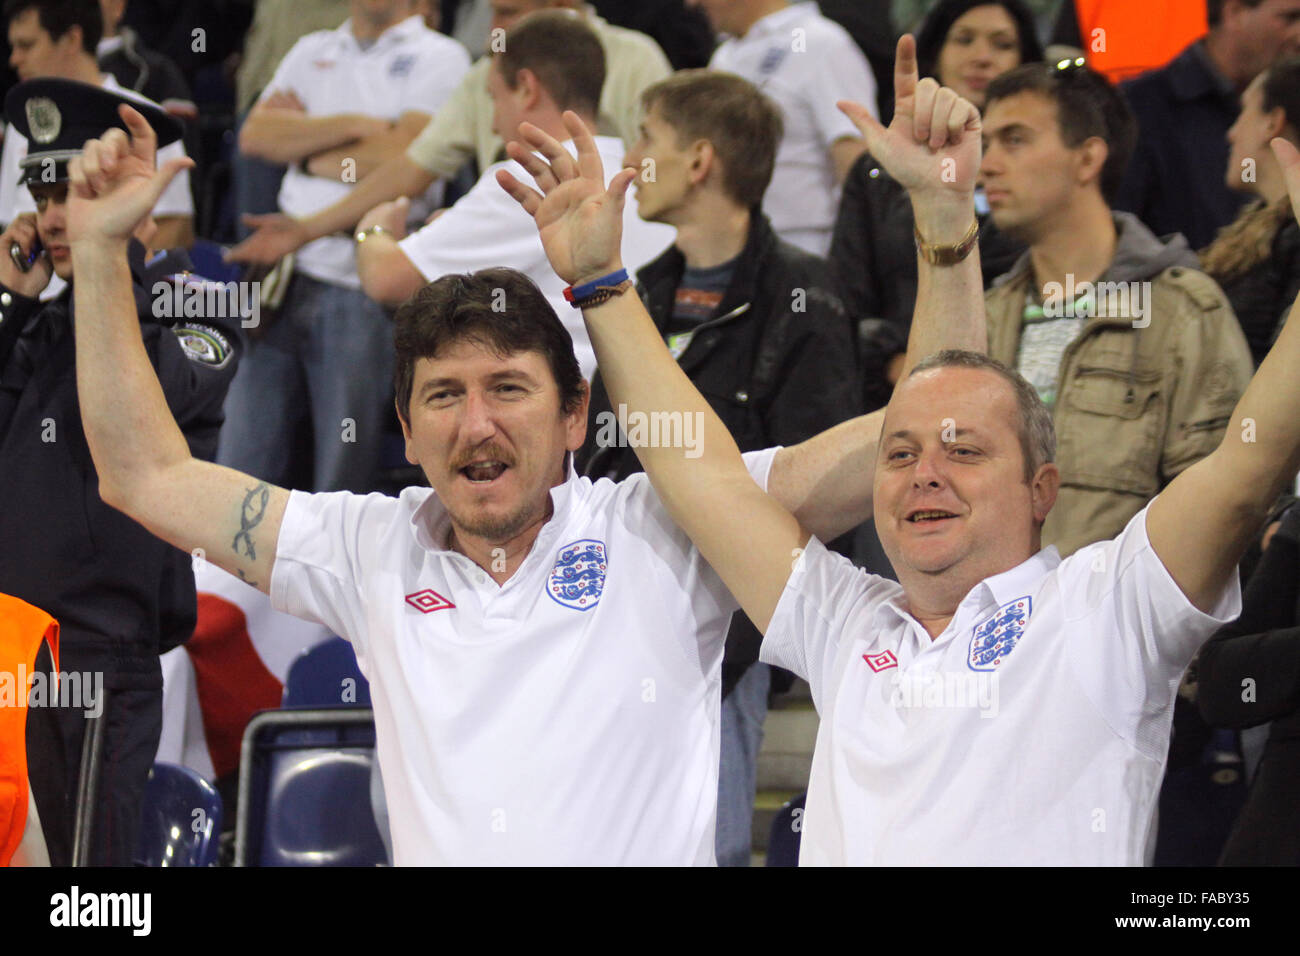 DNIPROPETROVSK, UKRAINE - OCTOBER 10, 2009: England fans react during World Cup 2010 qualifying football match against - Stock Image